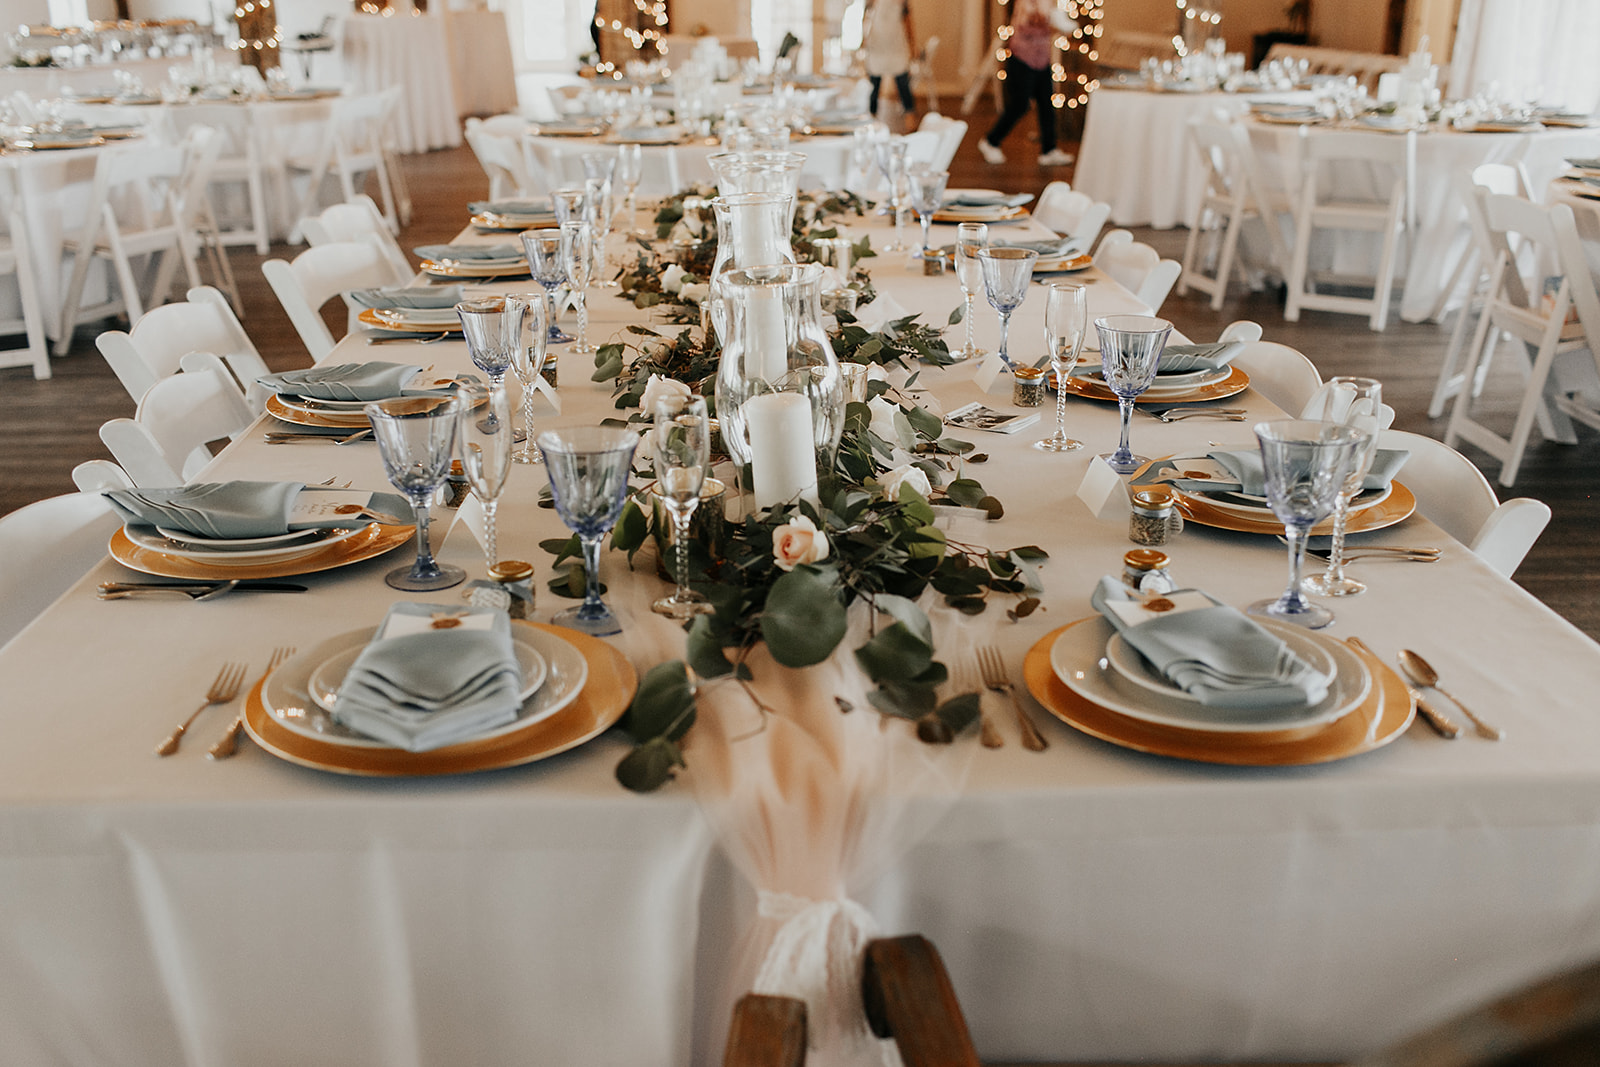 wedding details and table decor